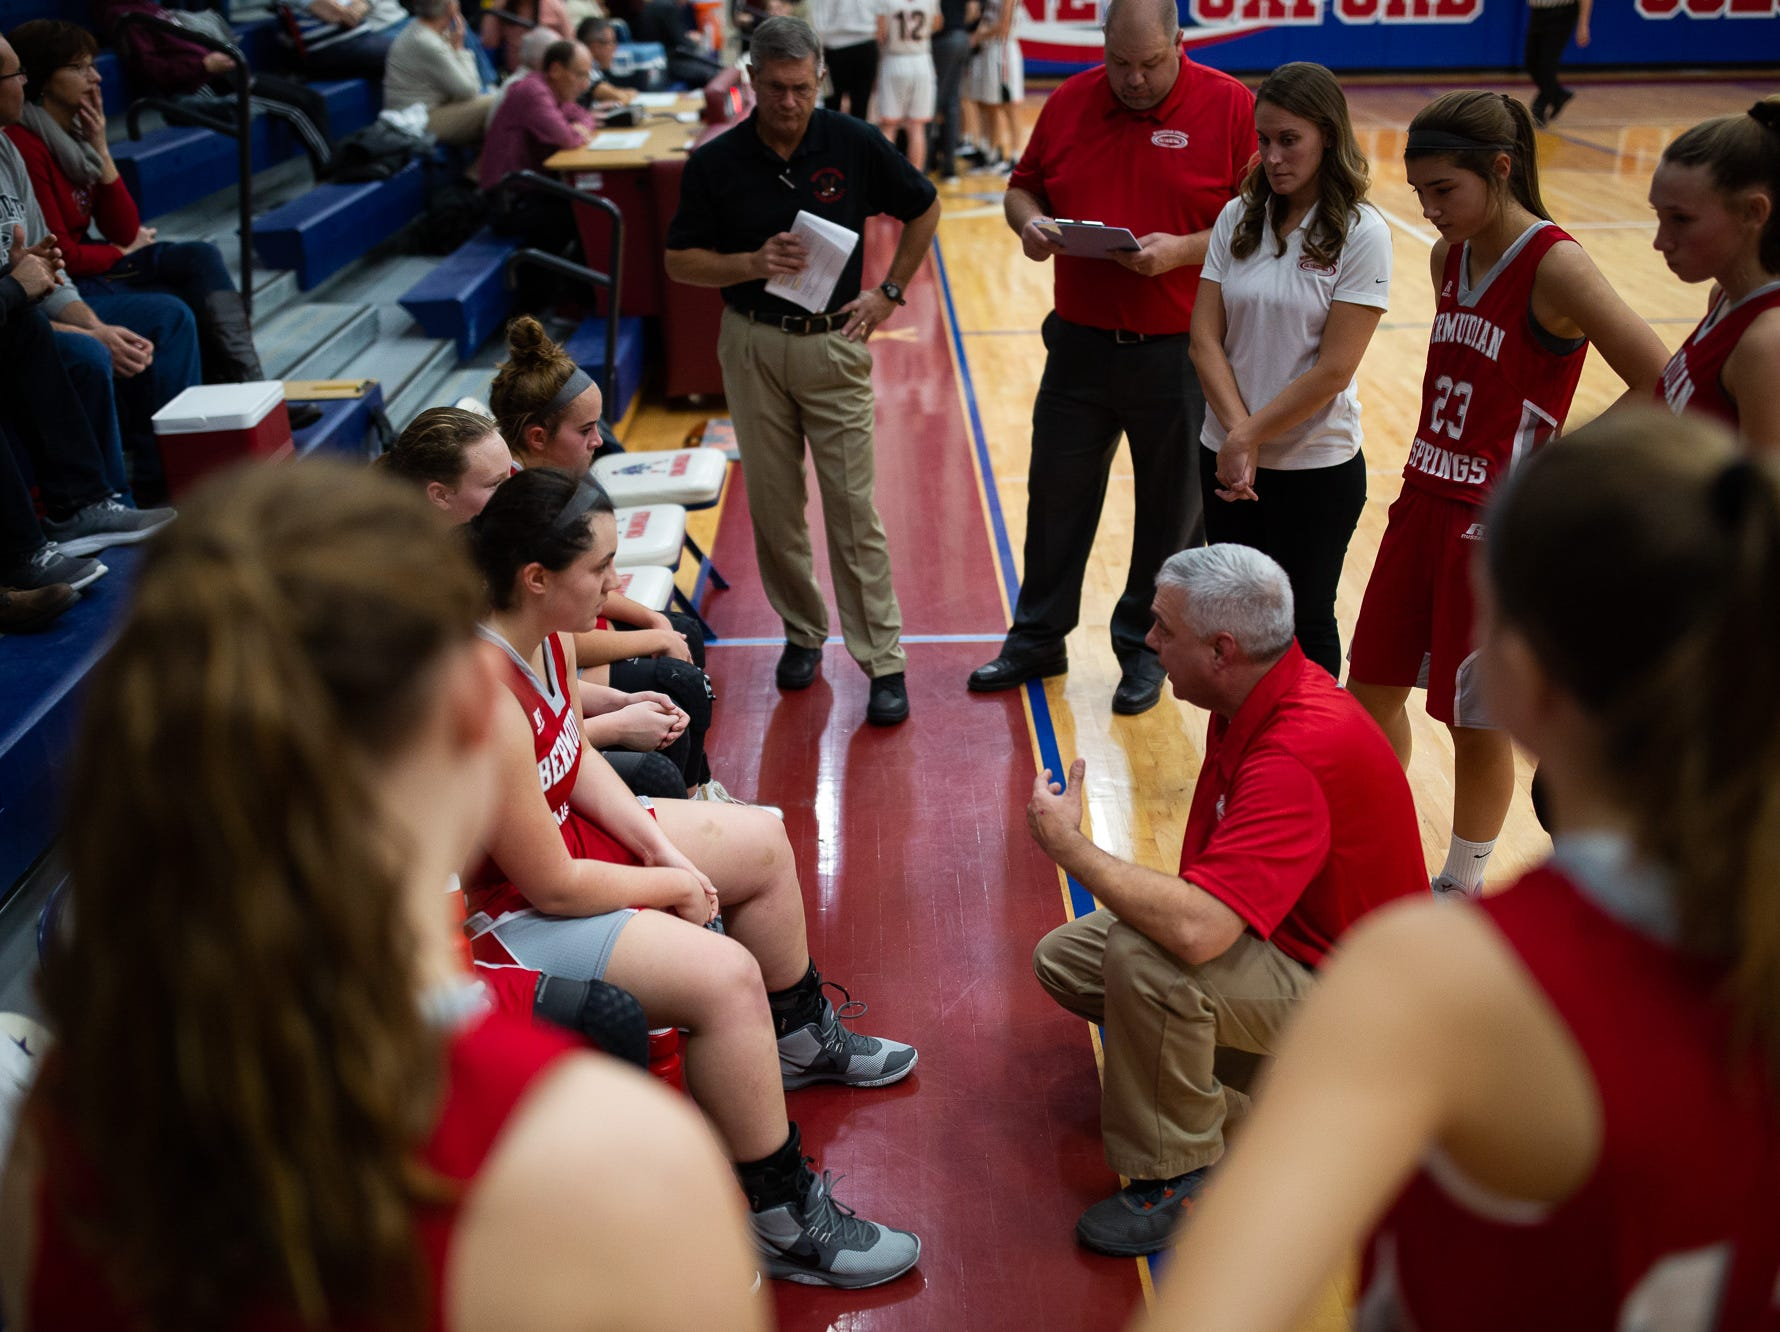 Bermudian Springs coach Todd Askins speaks to his team during the consolation game between Bermudian Springs and York Suburban during the New Oxford Girls Basketball Tip-Off Tournament, Saturday, Dec. 8, 2018, in New Oxford. The Bermudian Springs Lady Eagles defeated the York Suburban Lady Trojans 60-58.